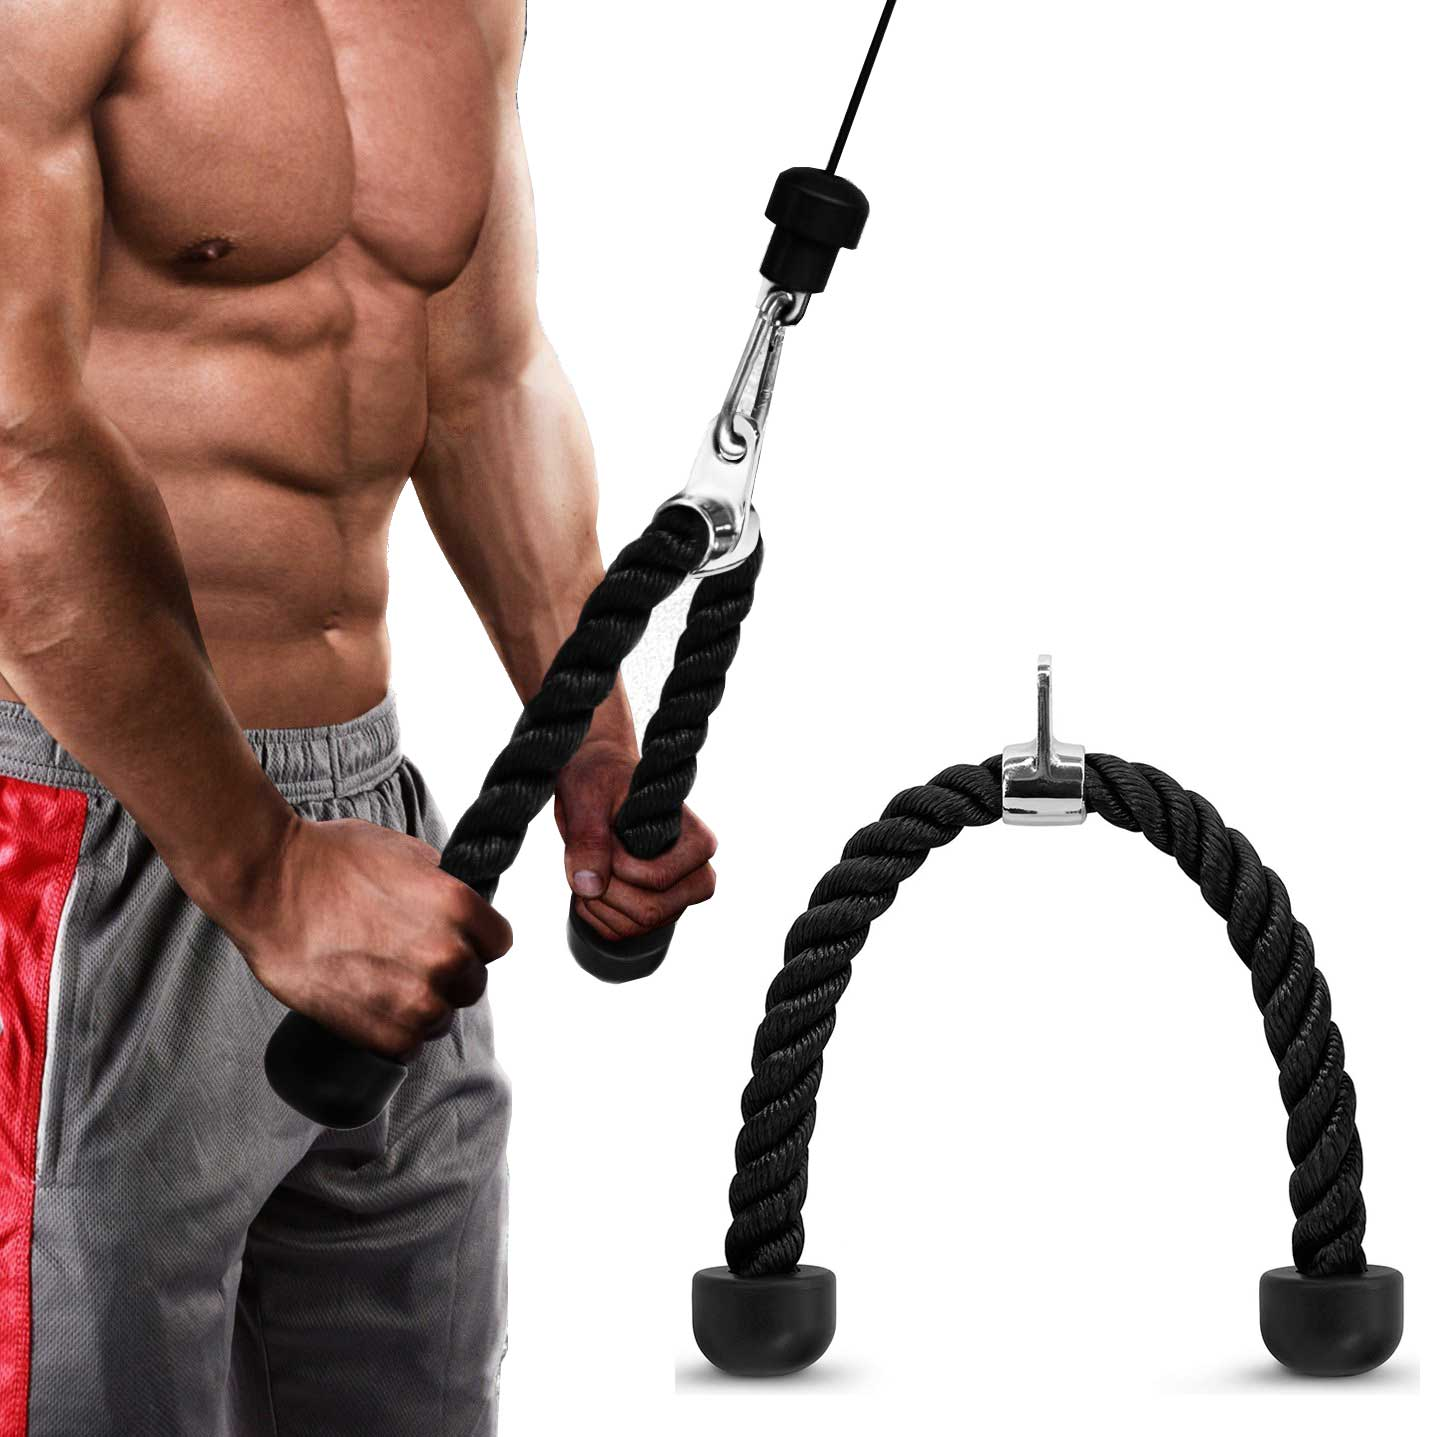 Tricep Rope Fitness BodyBuilding Gym  Abdominal Crunches Cable Pull Down Laterals Biceps Muscle Training  Pull Rope